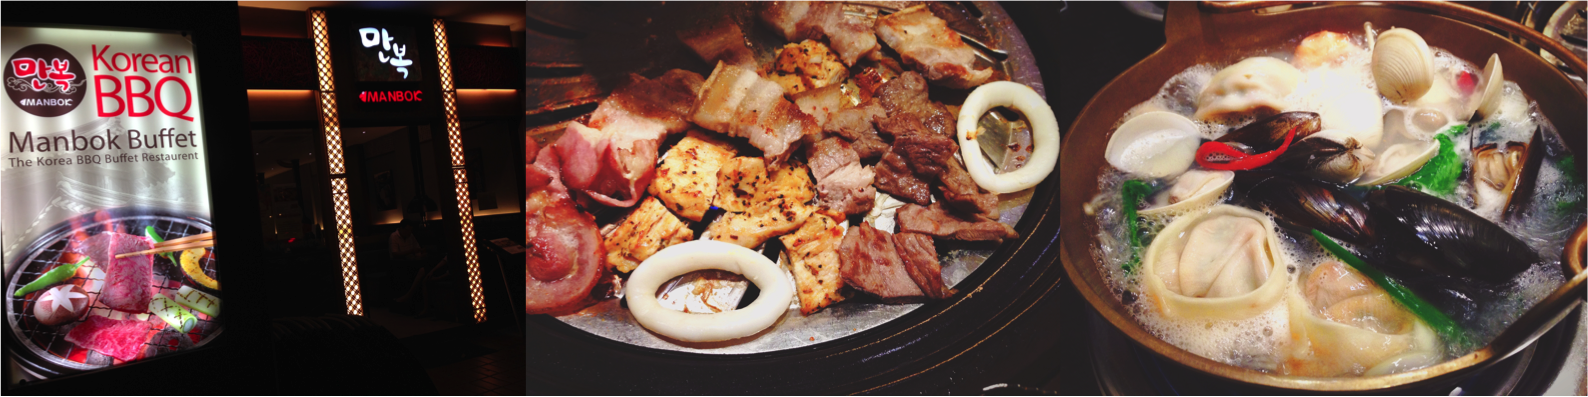 Manbok Korean BBQ & Steamboat Chinatown Singapore